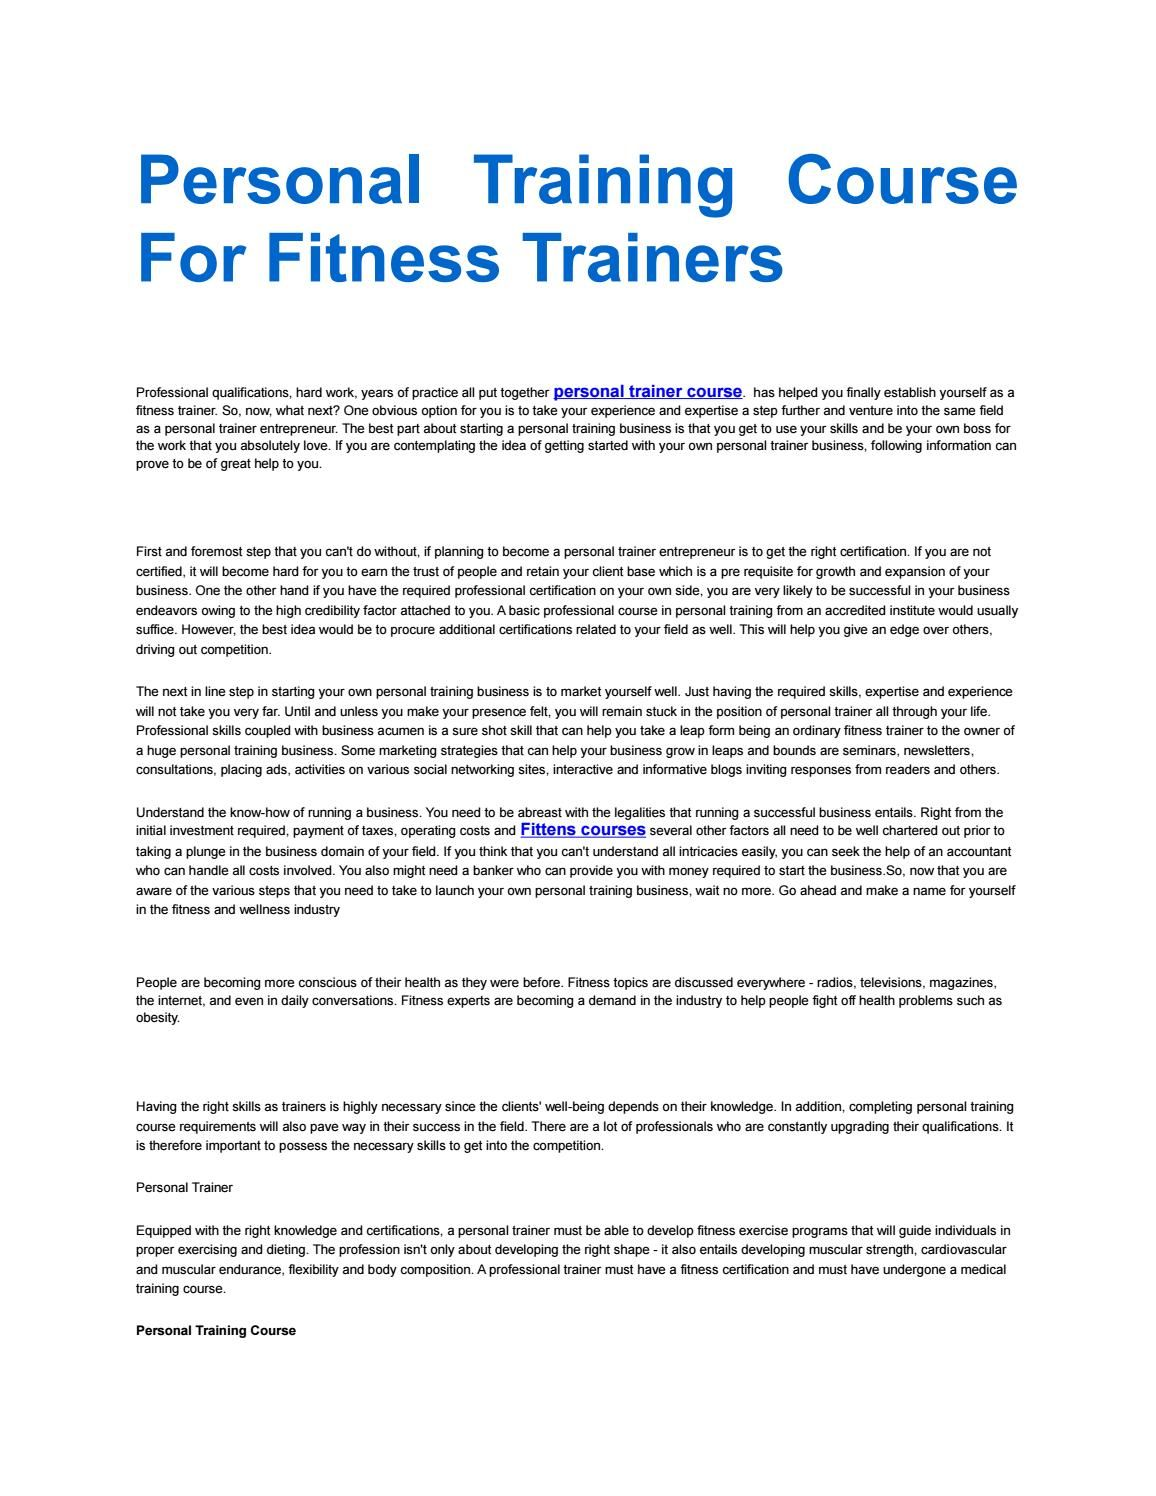 Personal Training Course For Fitness Trainers